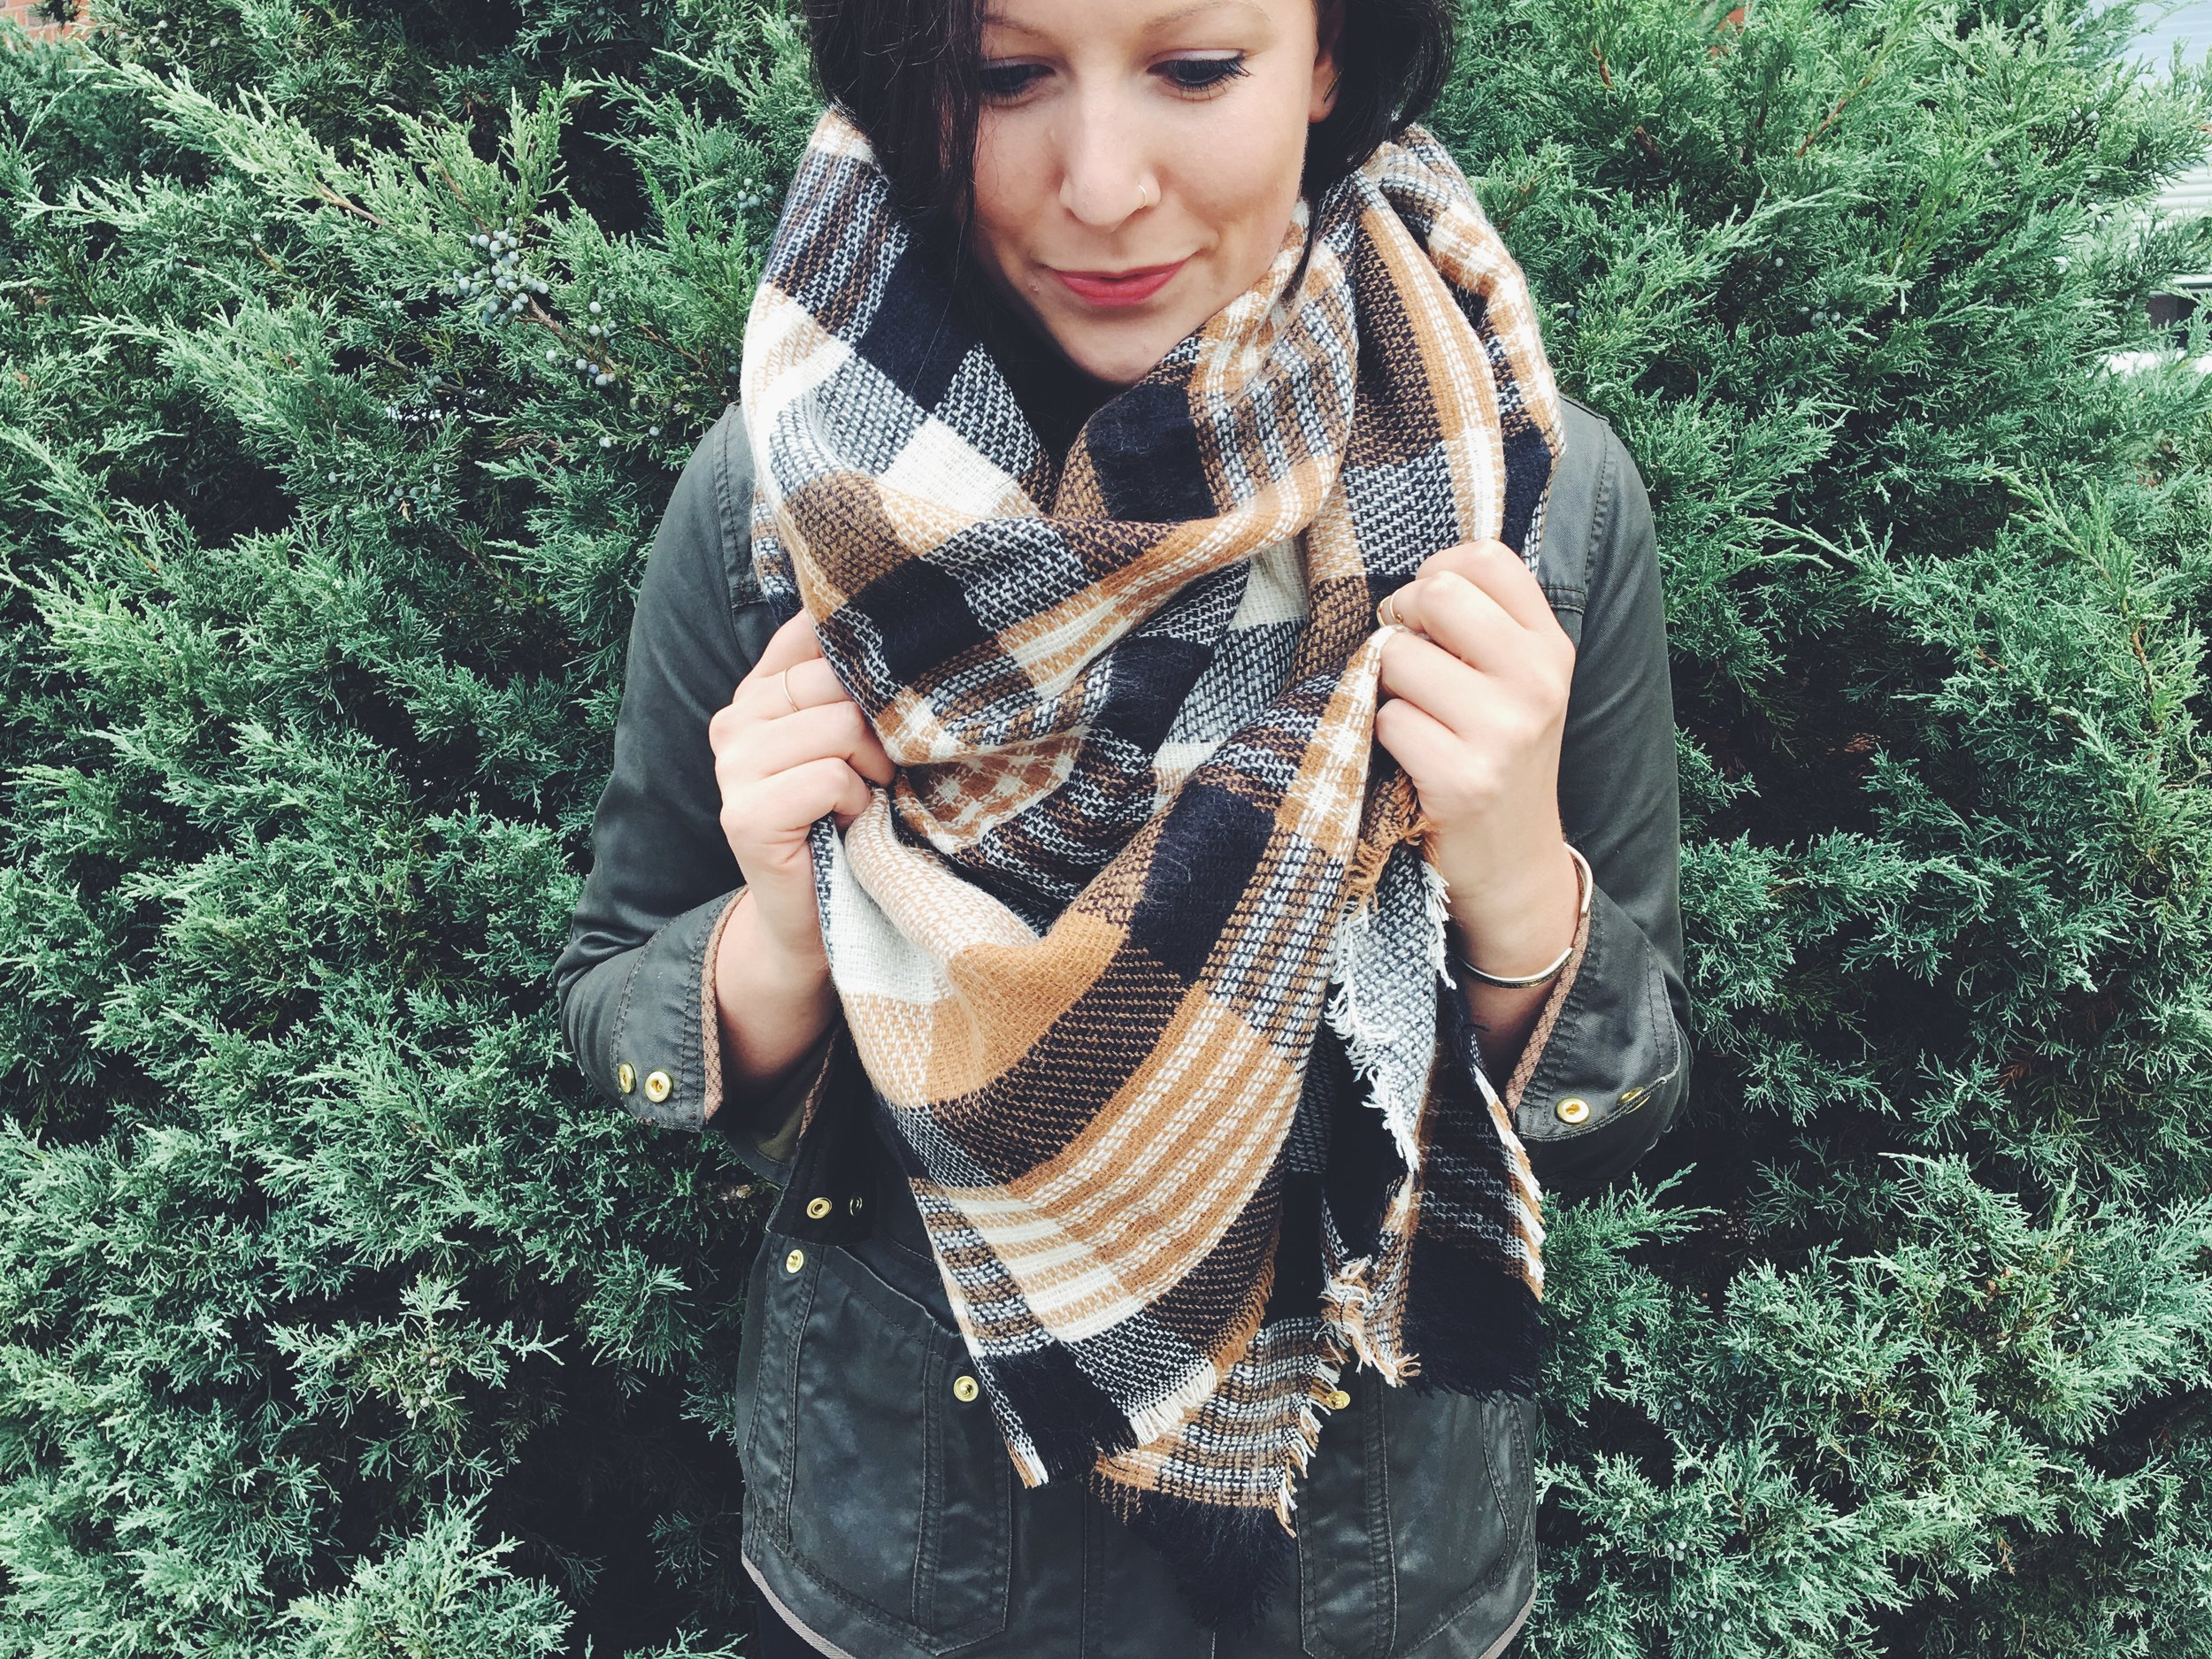 I am a huge fan of  Jillian Harris  (from HGTV and The Bachelorette) and saw her posting about this scarf and HAD. TO. HAVE. IT. My FabFitFun box came with a different color than hers but I loved it even more!